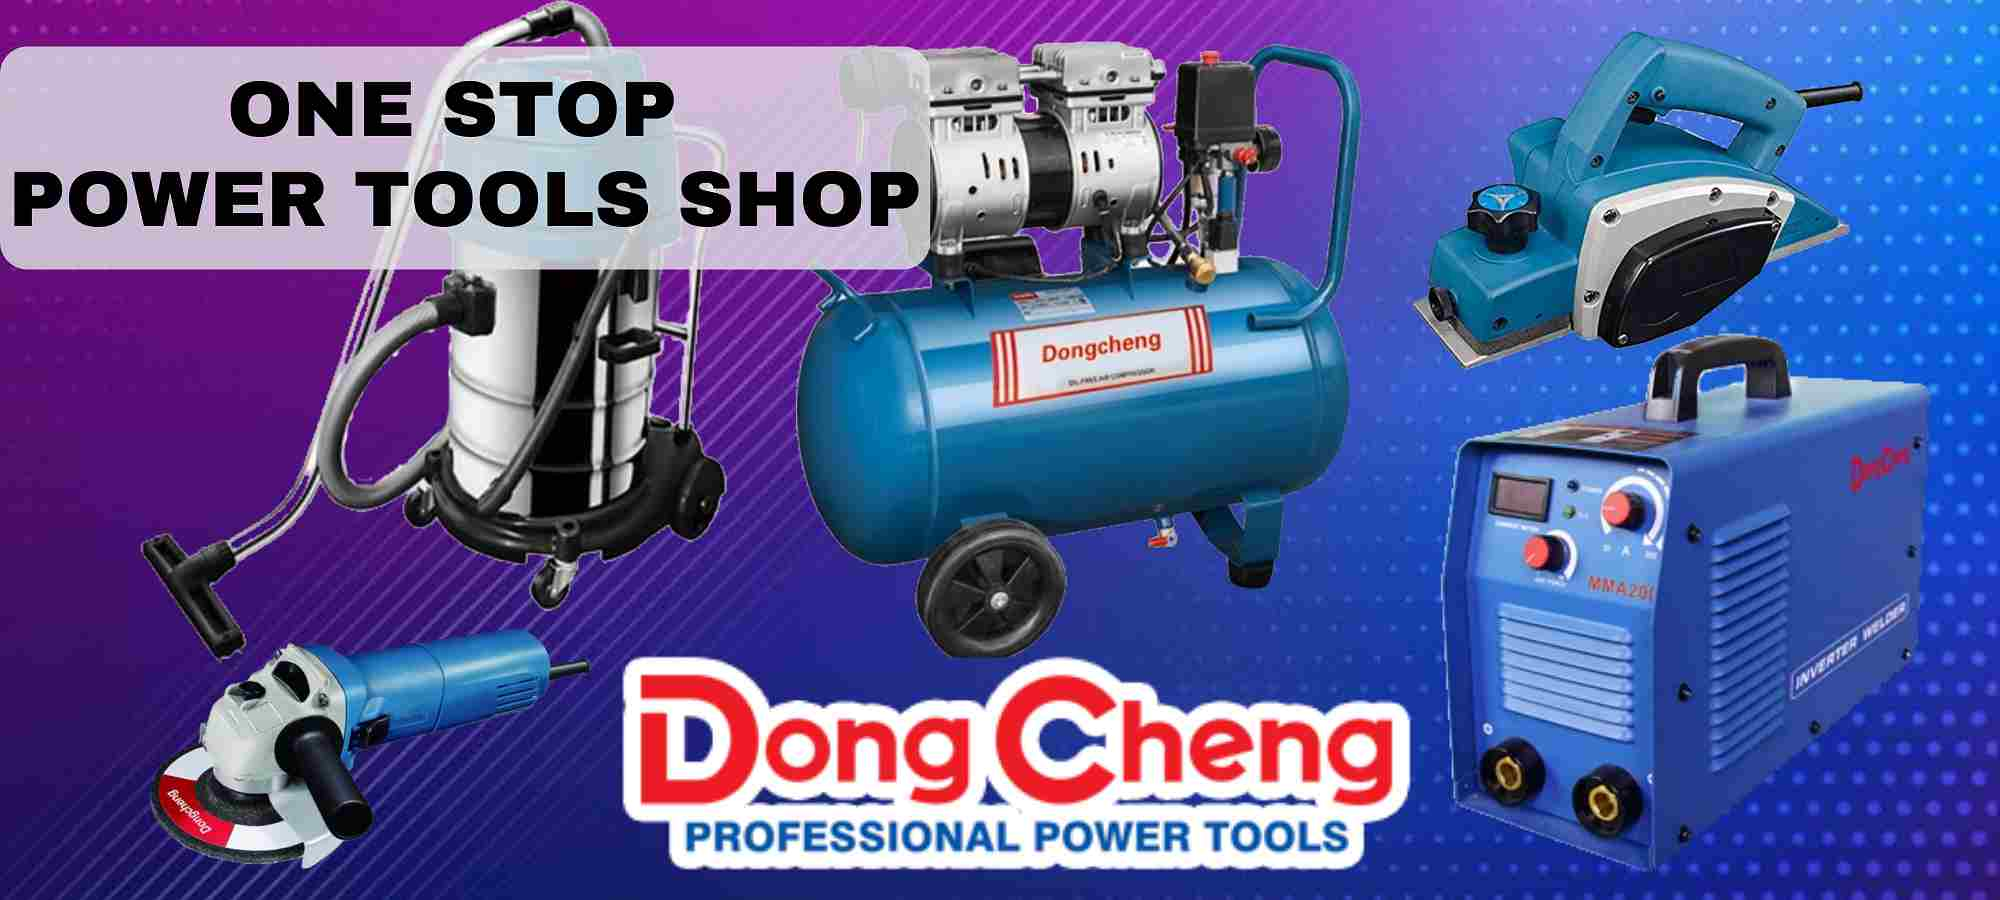 dongcheng-power-tools-brand-page-tikweld-a.jpg